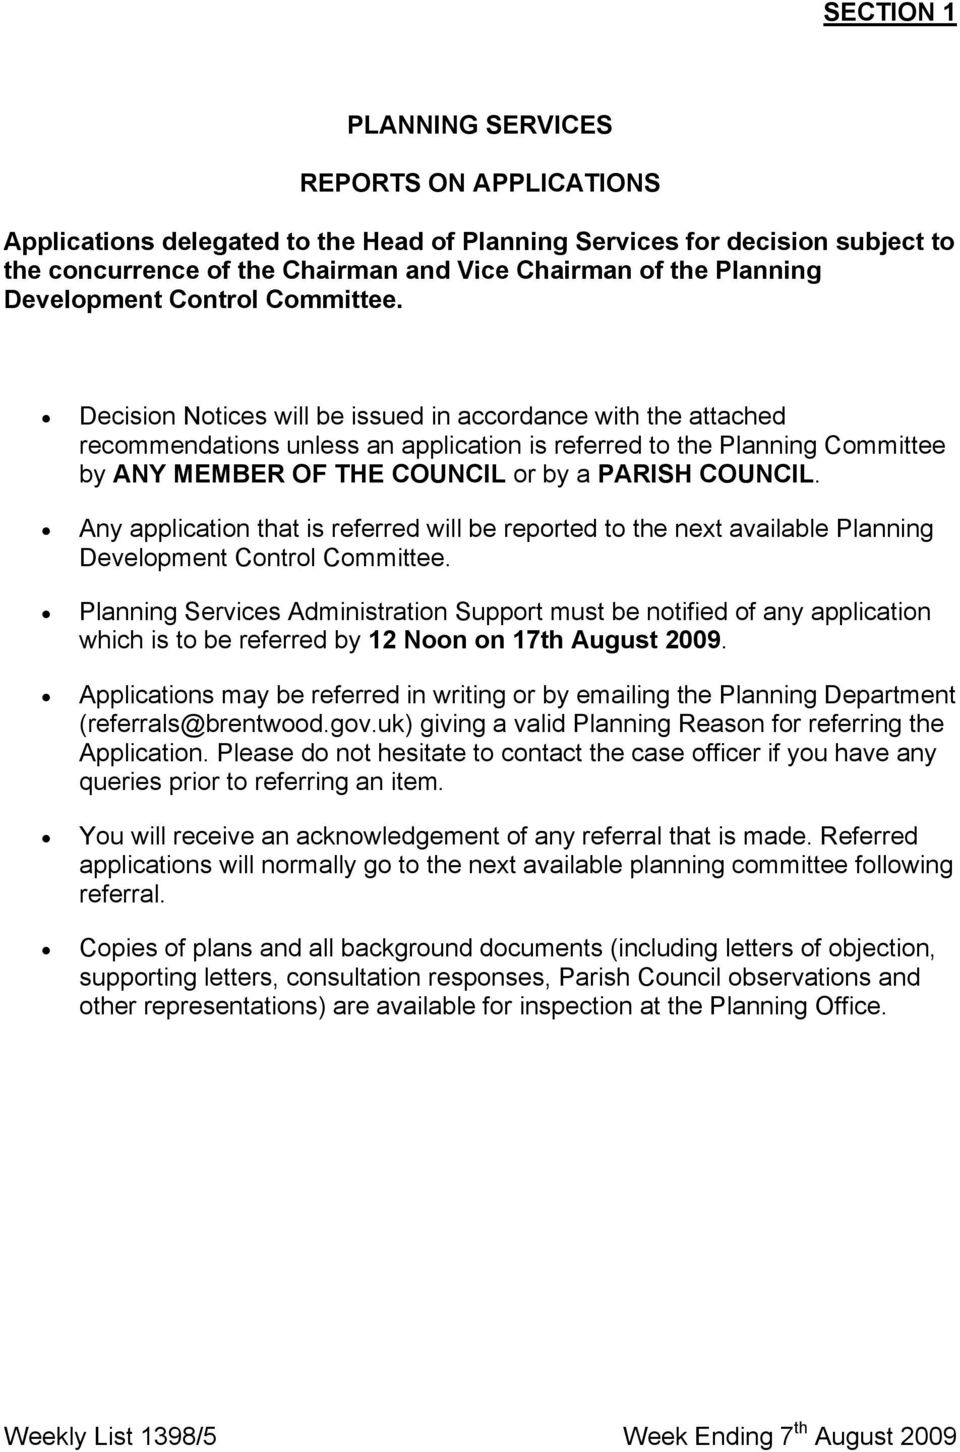 Decision Notices will be issued in accordance with the attached recommendations unless an application is referred to the Planning Committee by ΑΝΨ ΜΕΜΒΕΡ ΟΦ ΤΗΕ ΧΟΥΝΧΙΛ or by a ΠΑΡΙΣΗ ΧΟΥΝΧΙΛ.